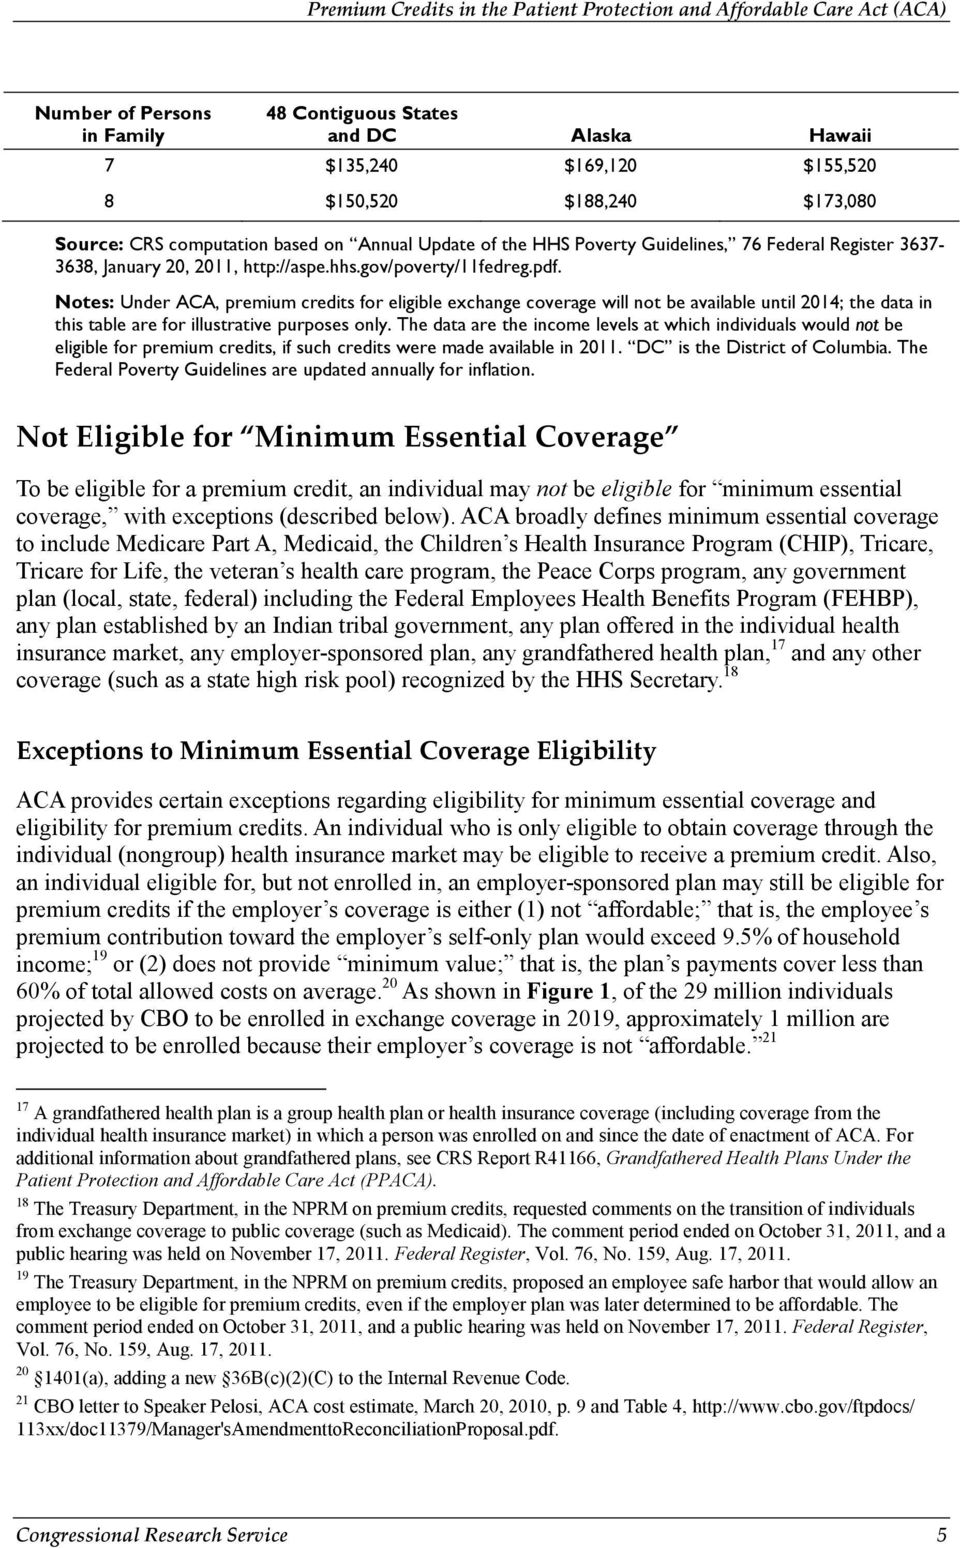 Notes: Under ACA, premium credits for eligible exchange coverage will not be available until 2014; the data in this table are for illustrative purposes only.